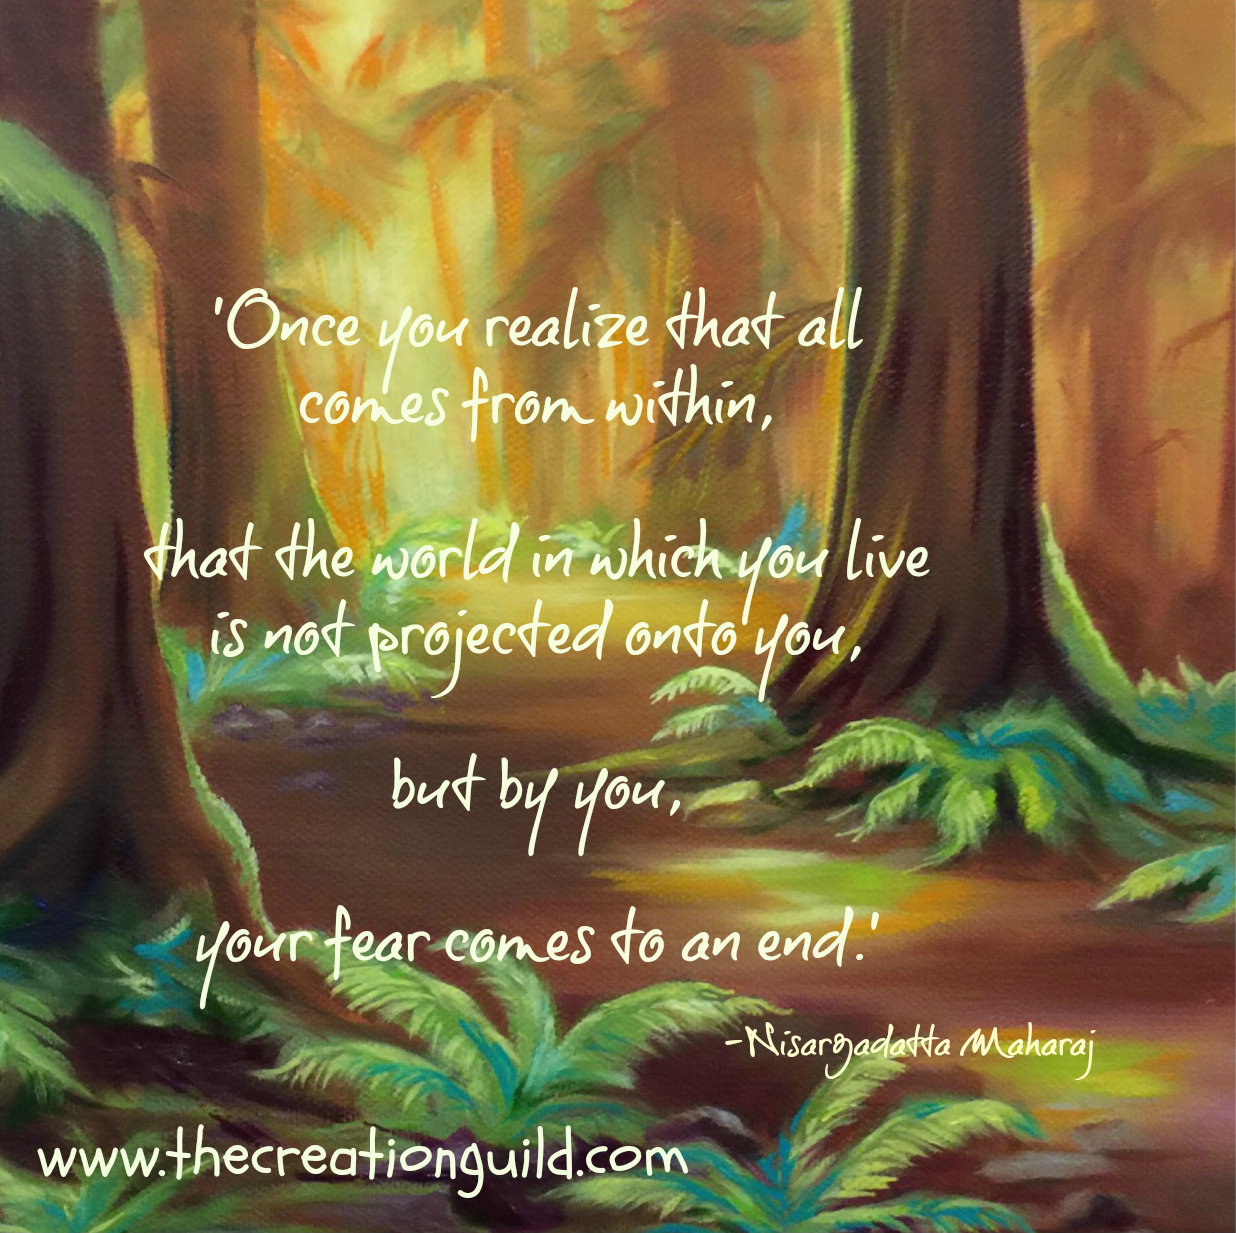 Strength from within https://thecreationguild.com/